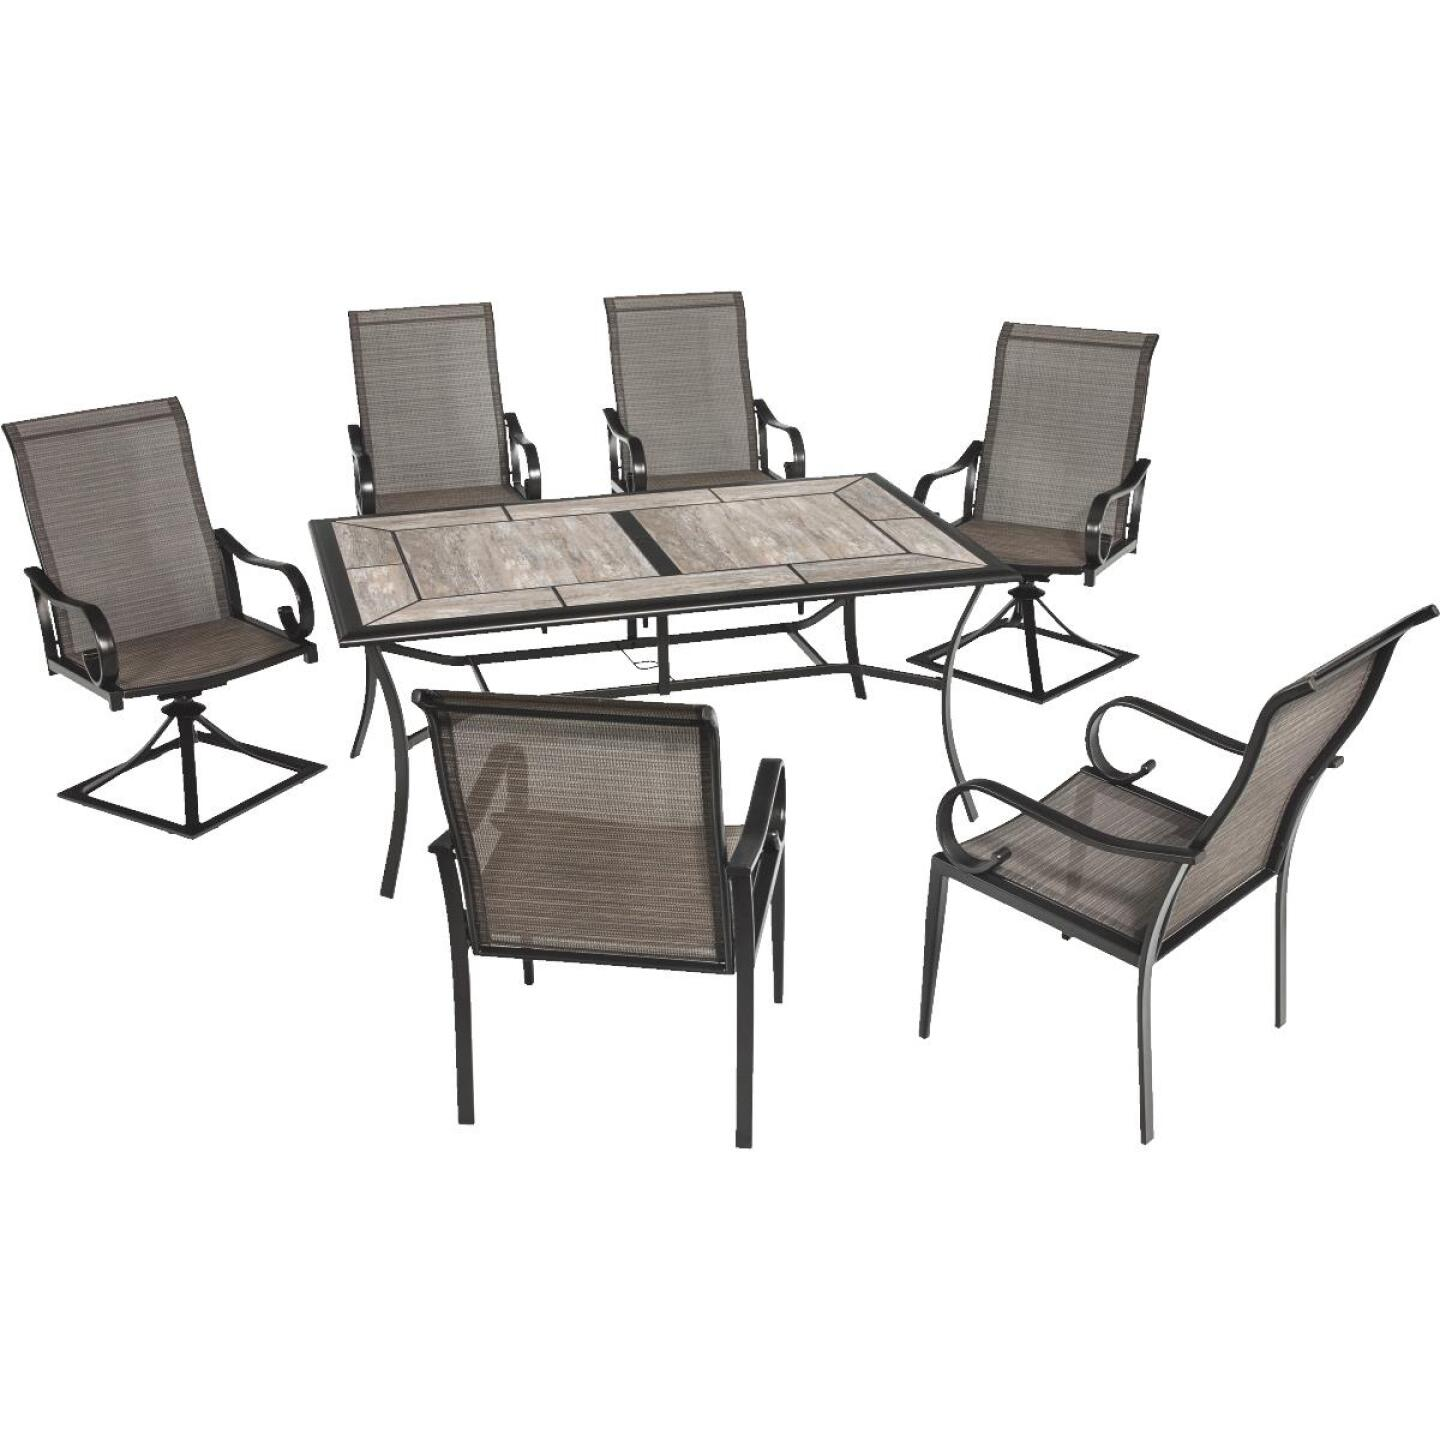 Outdoor Expressions Berkshire 7-Piece Dining Set Image 64